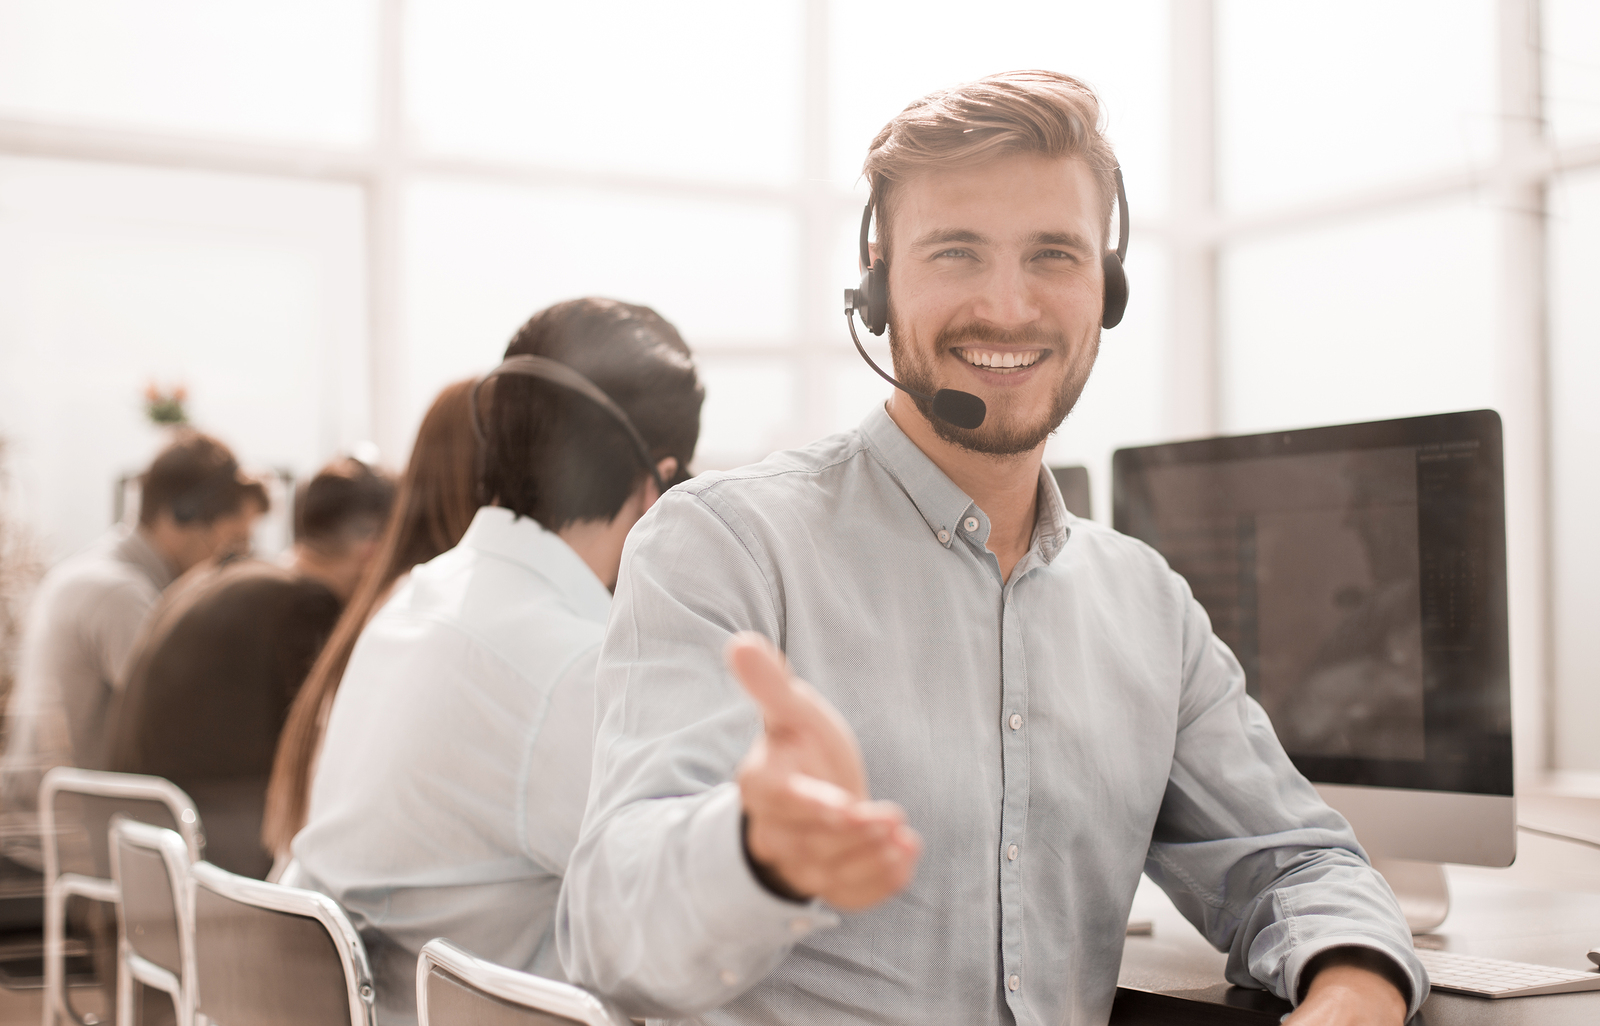 A smiling call center agent greets a customer.